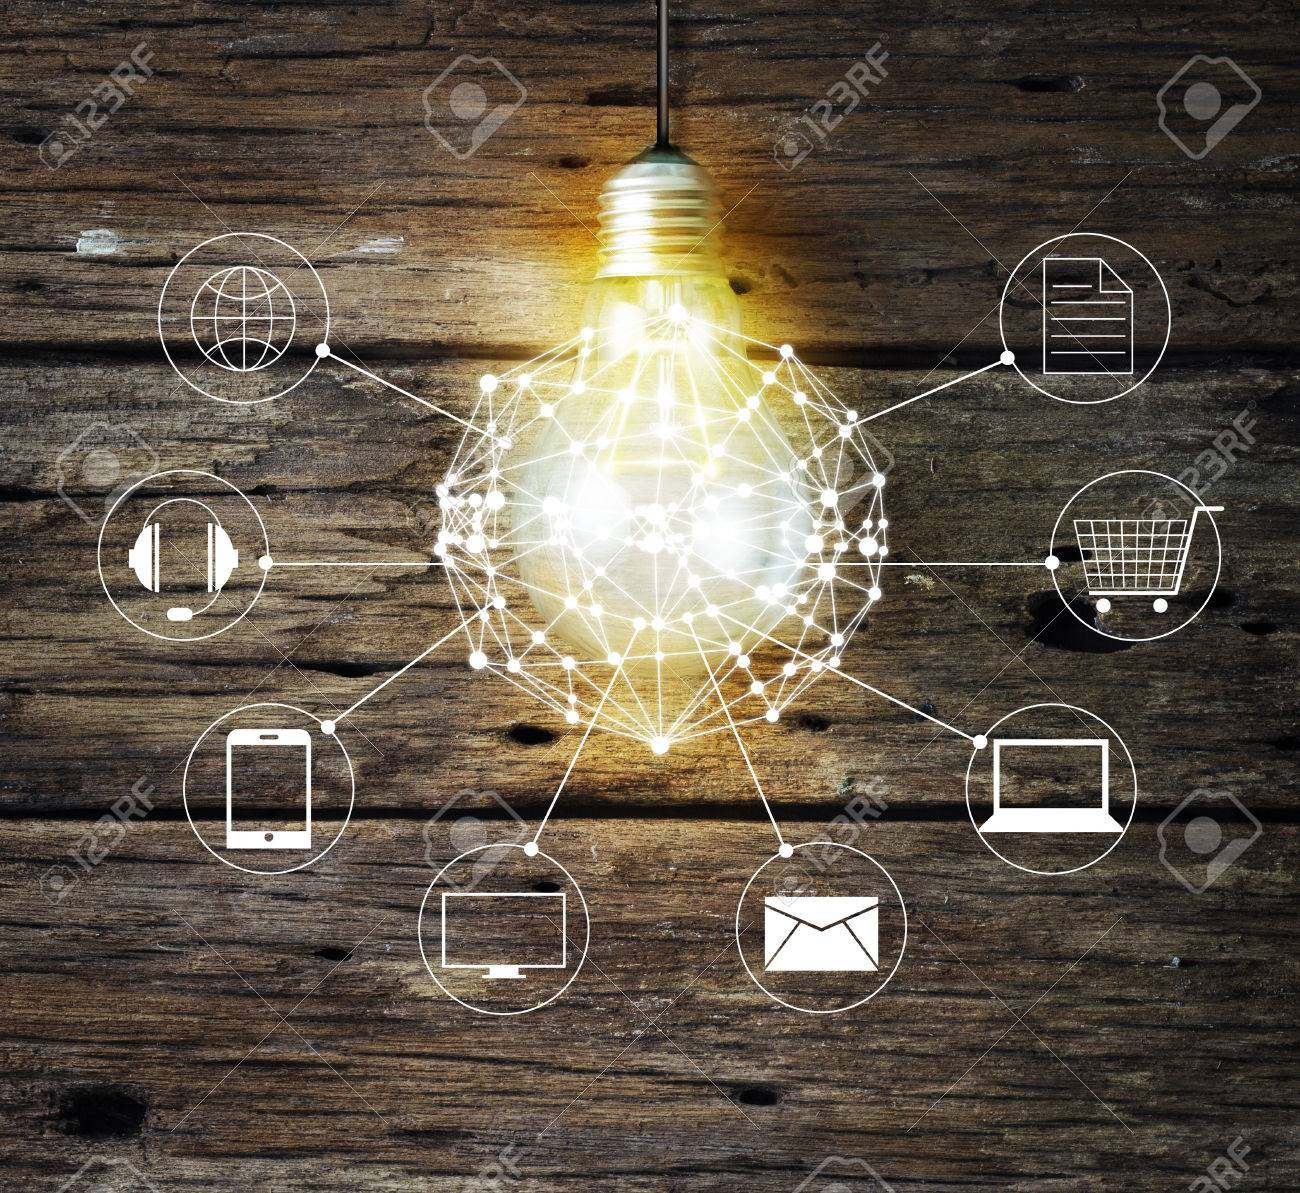 Light bulb circle global and icon customer network connection on wooden background, Omni Channel or Multi channel Standard-Bild - 60007103